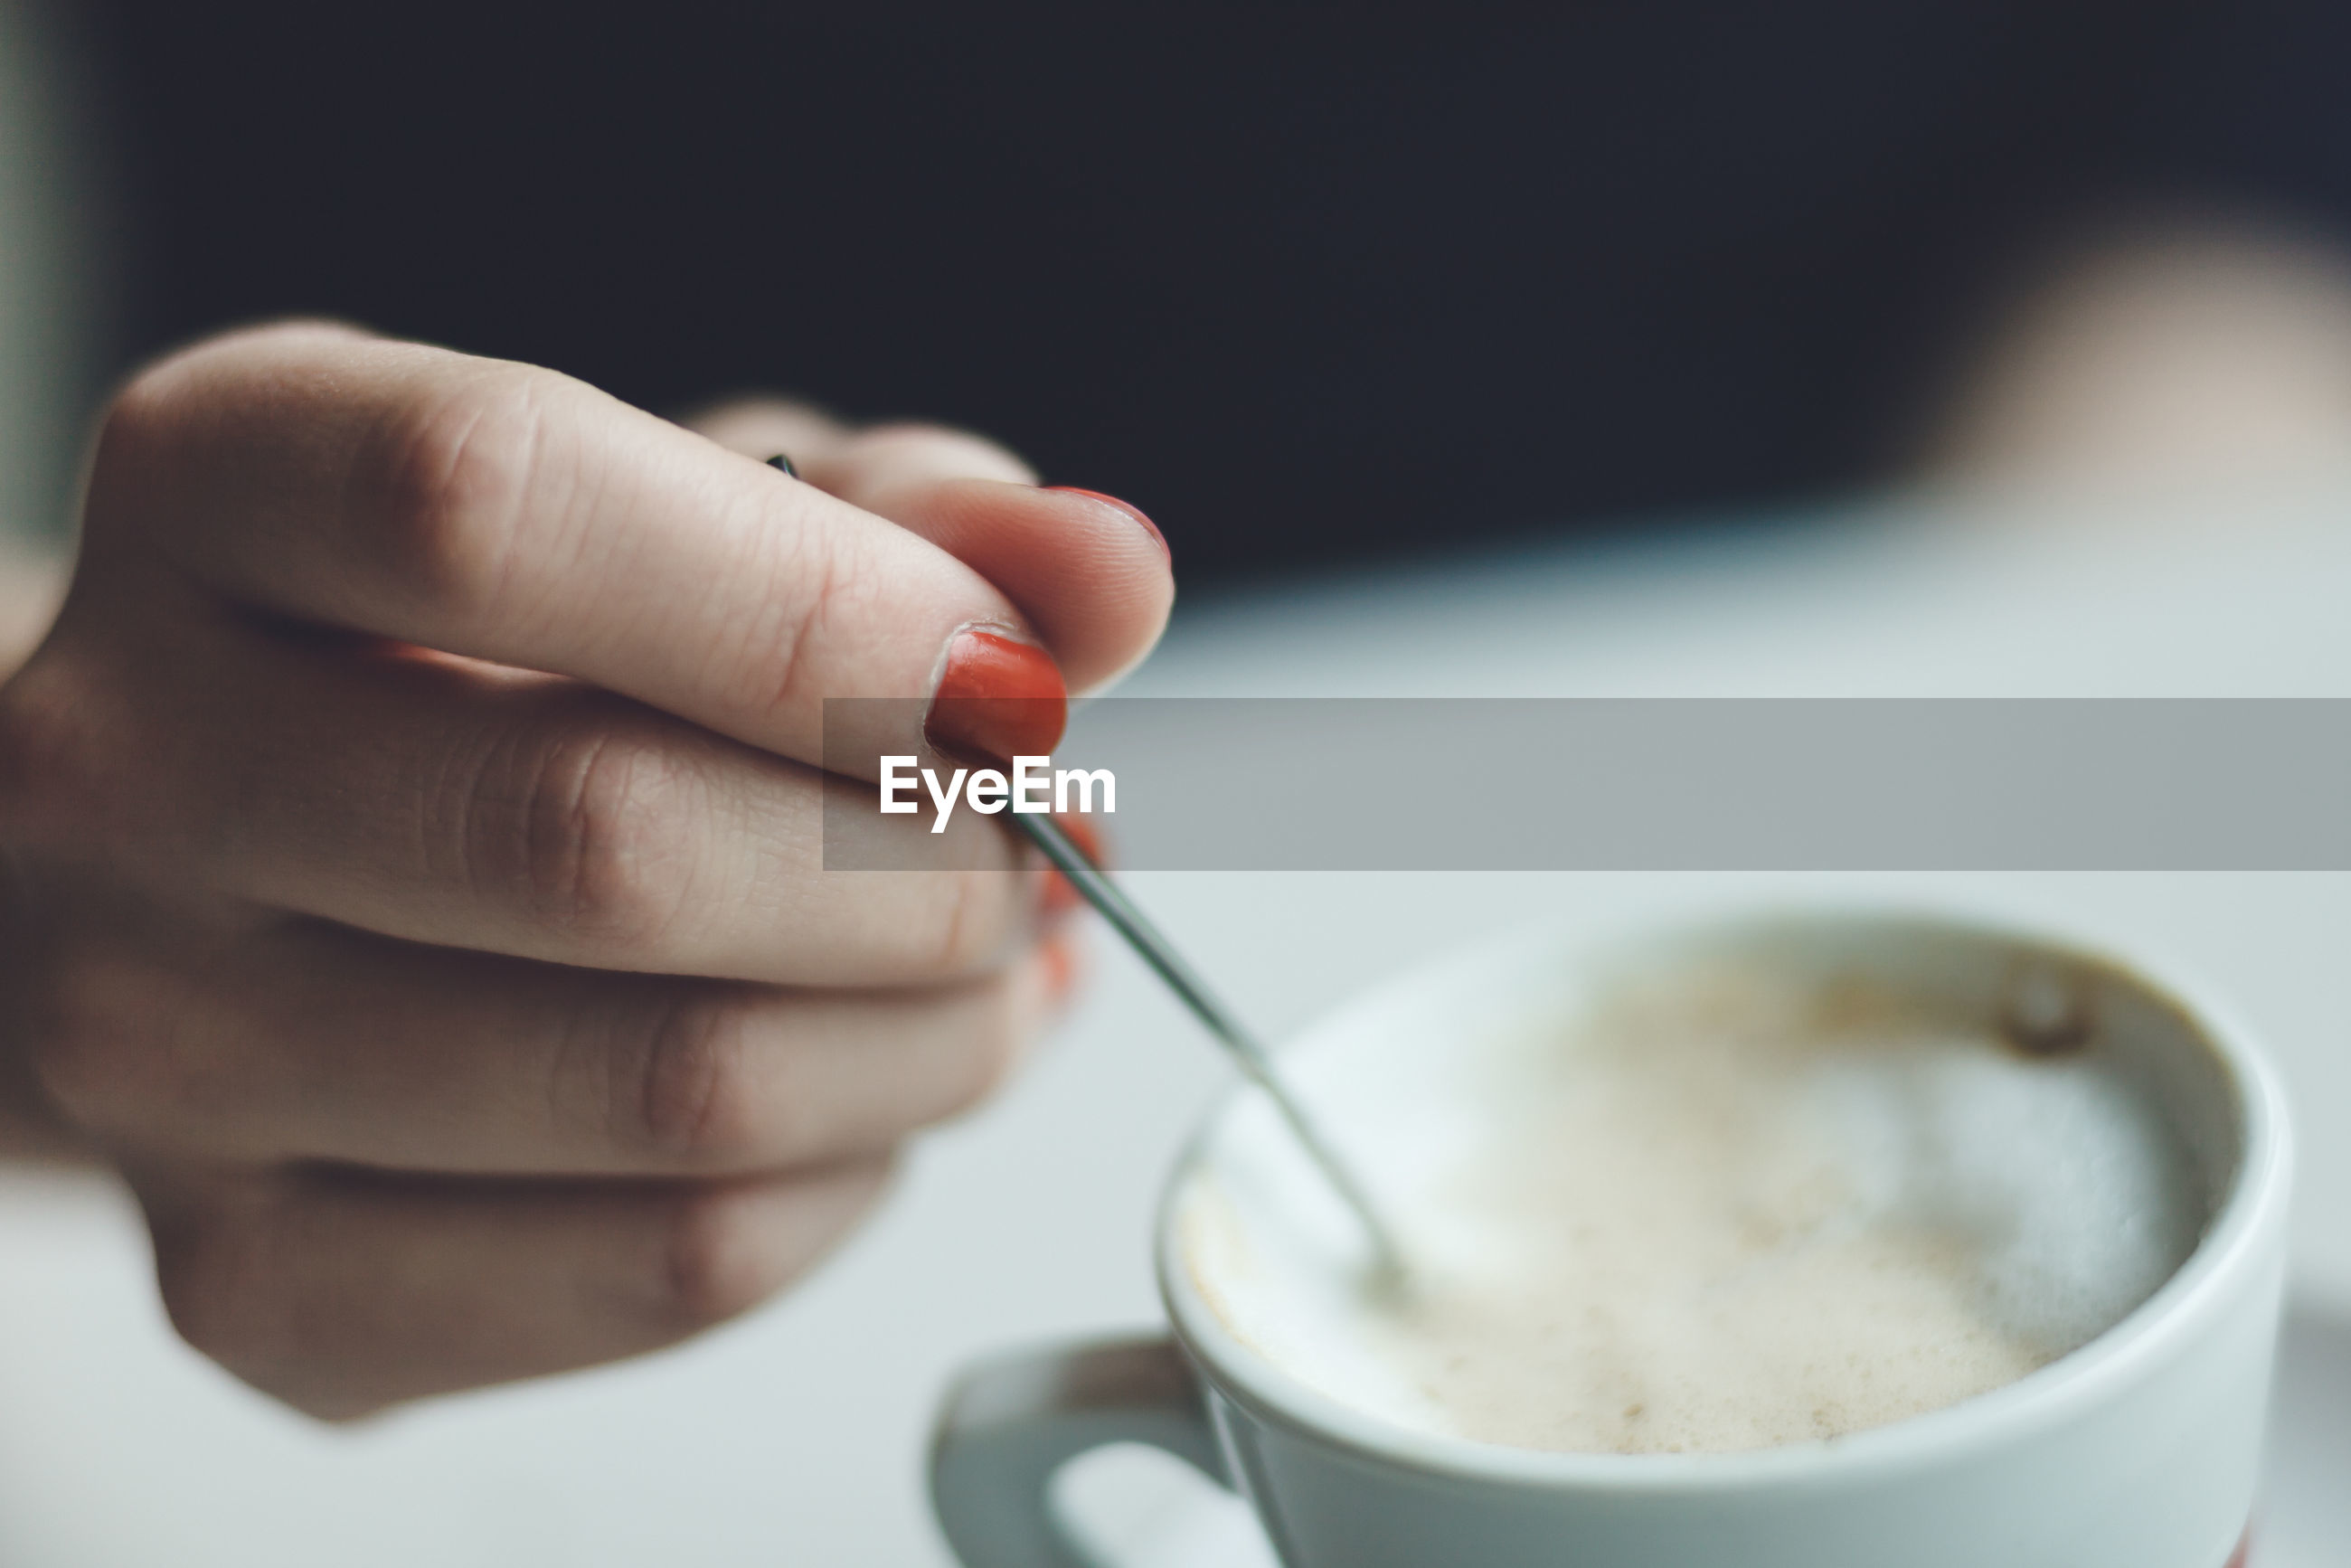 Close-up of hand holding coffee cup and spoon